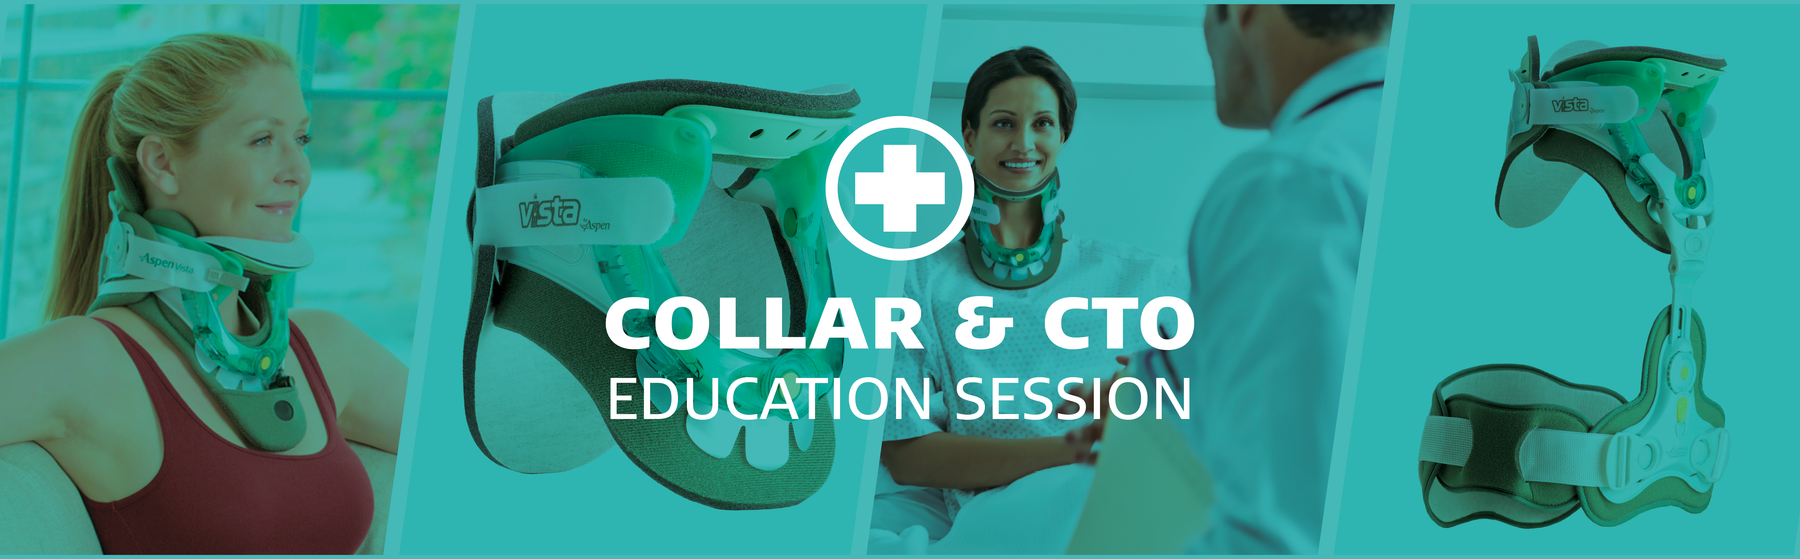 Collar & CTO Virtual Education Session